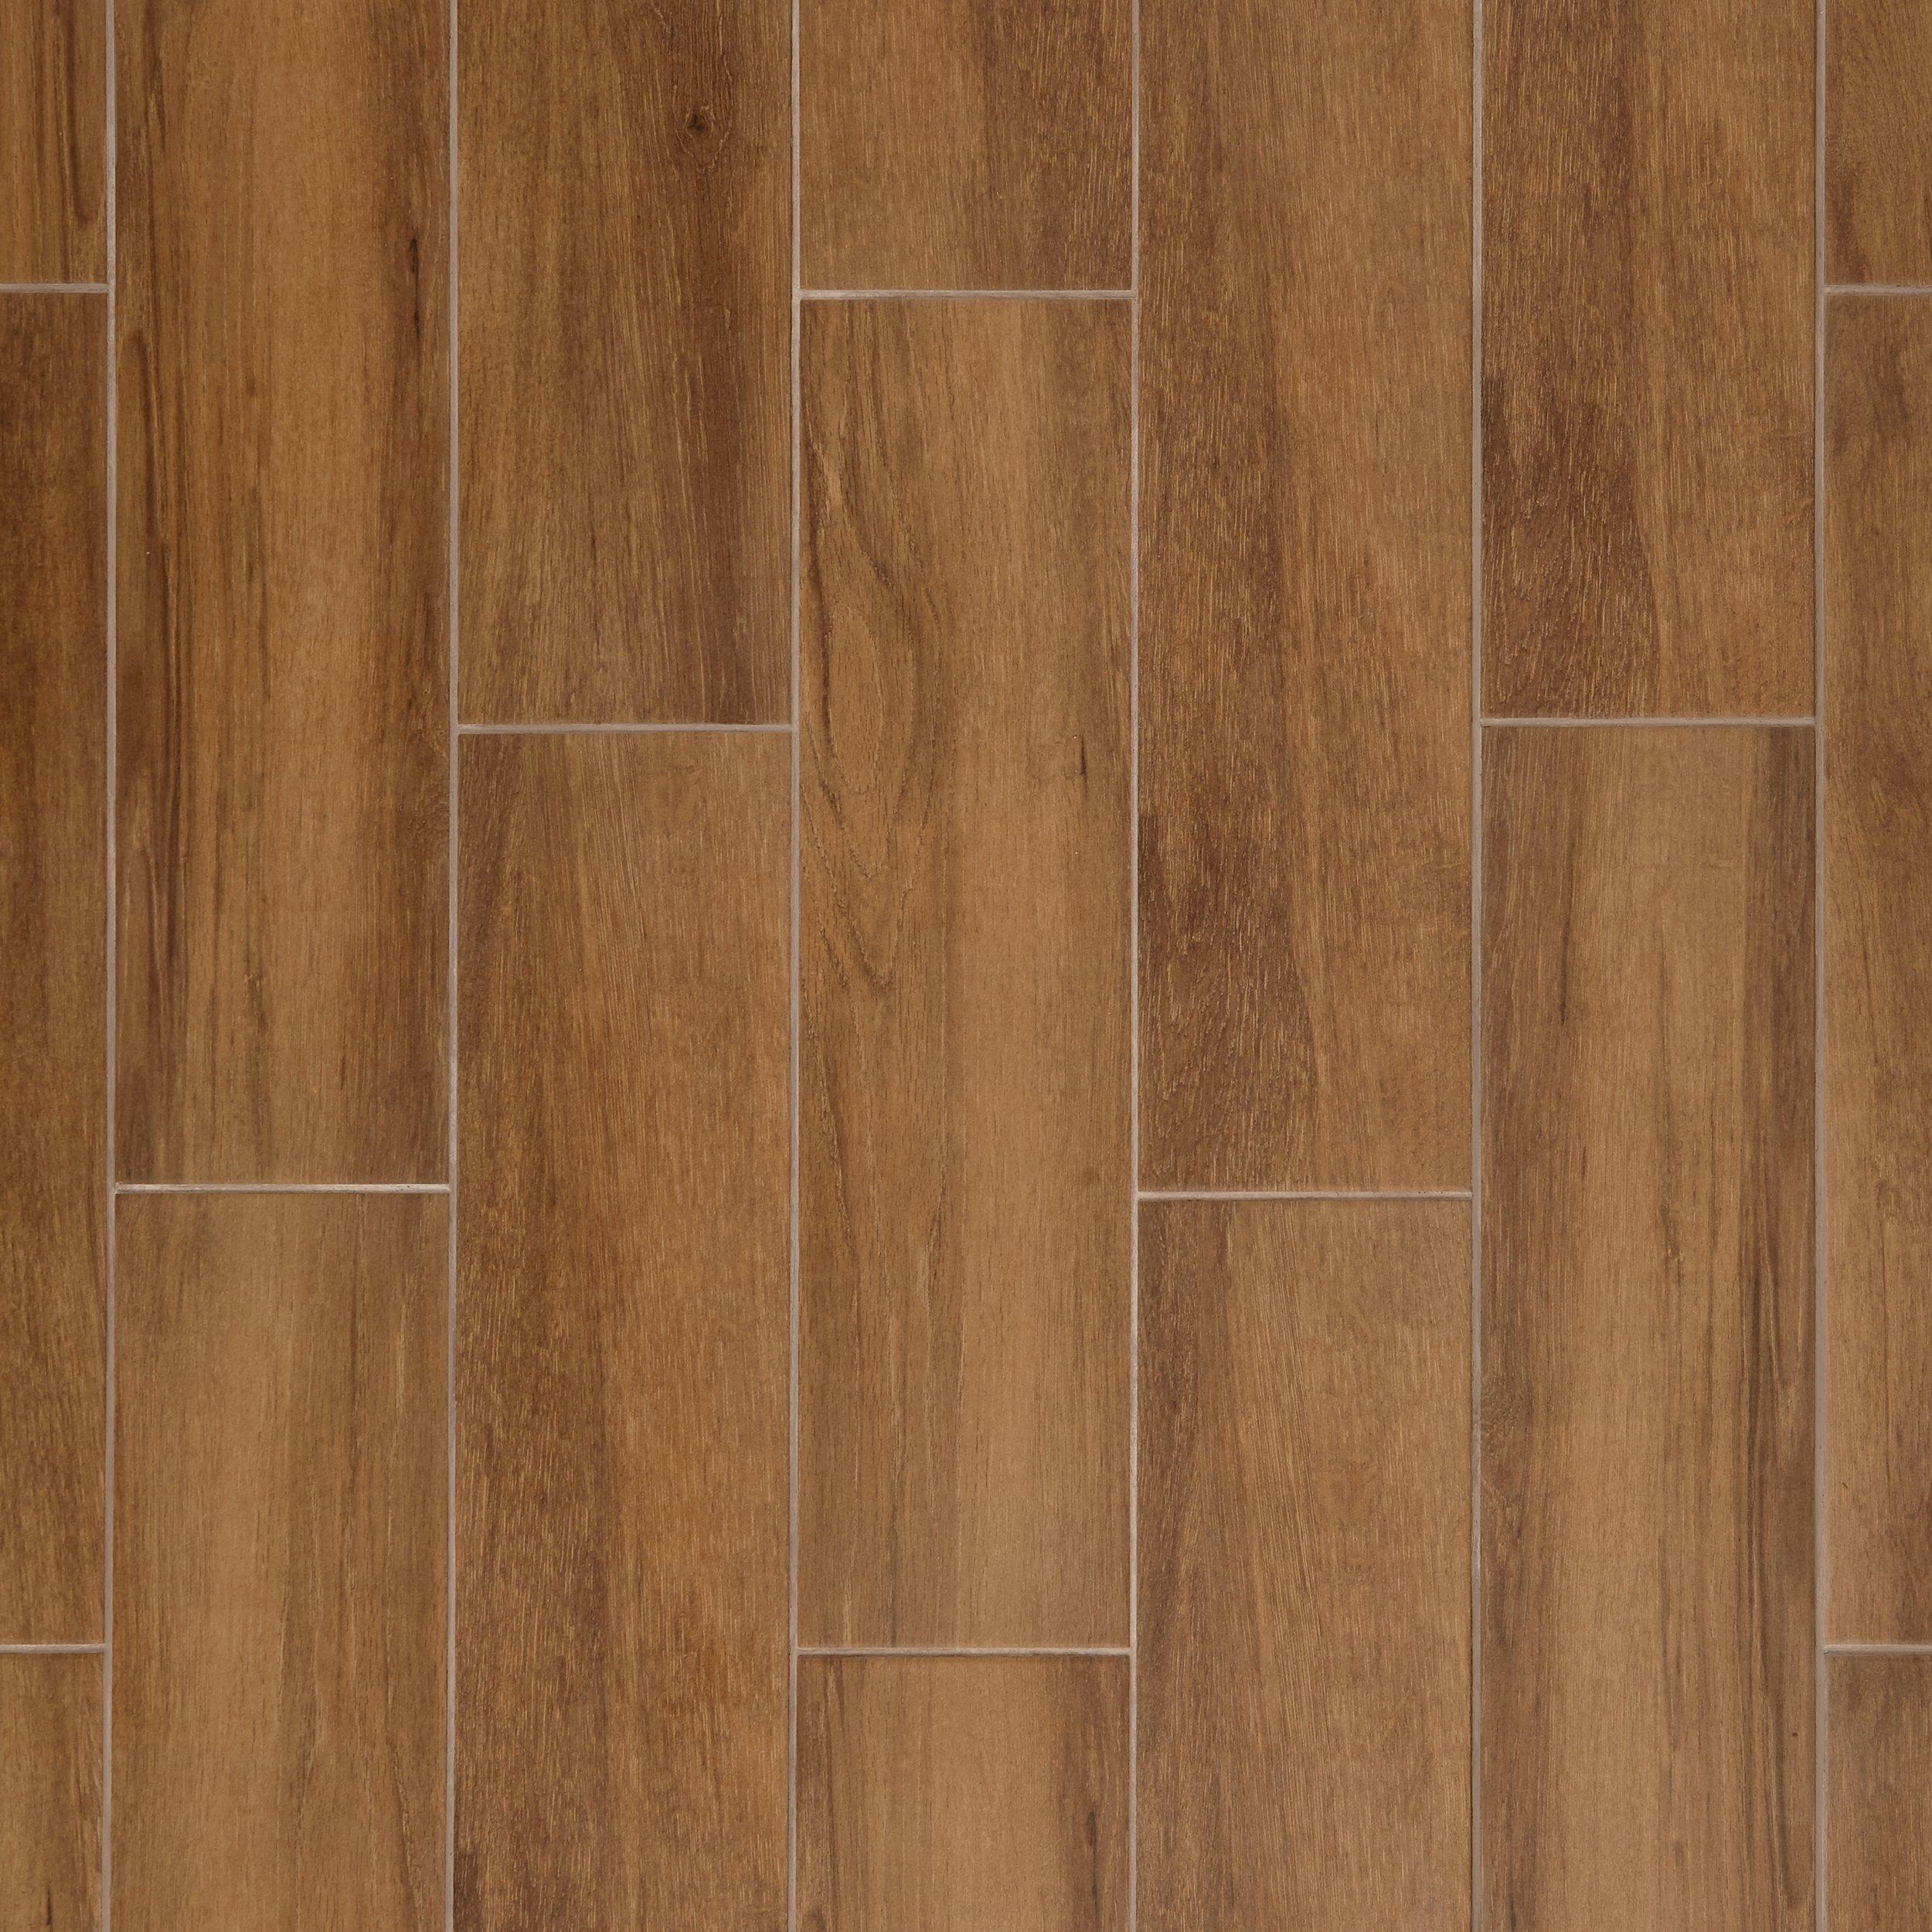 Wooden Tiles Wood Look Tile Floor And Decor